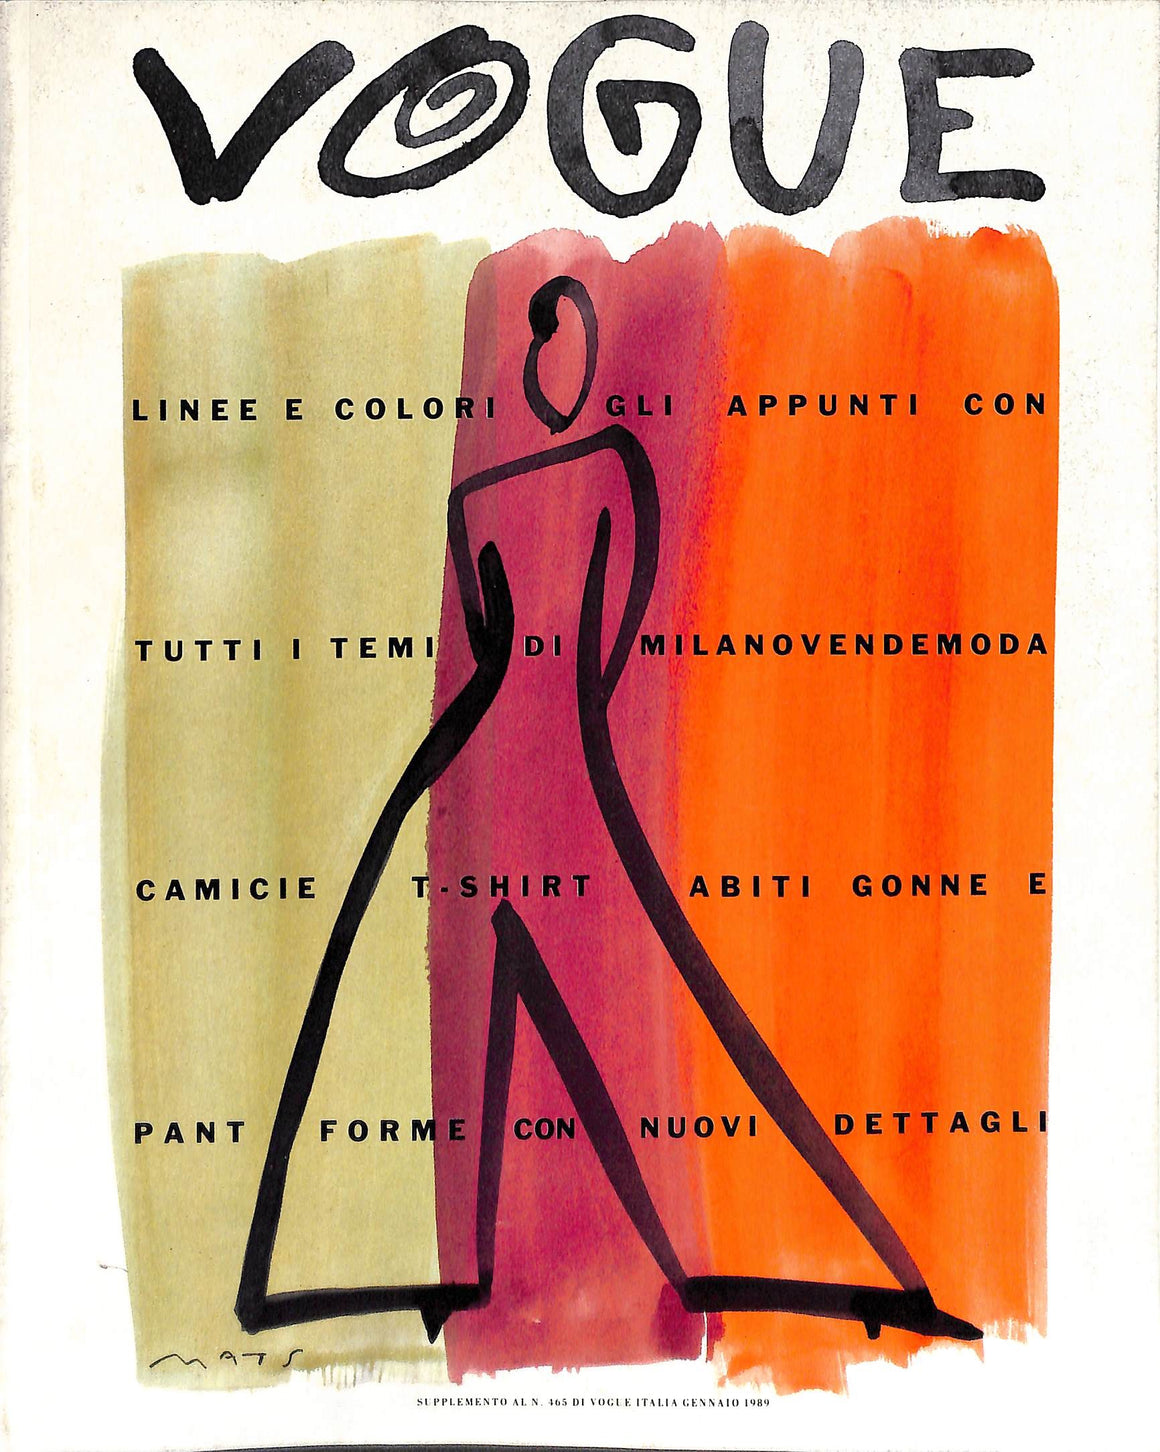 Vogue: Supplemento Al N. 465 Di Vogue Italia Gennaio 1989